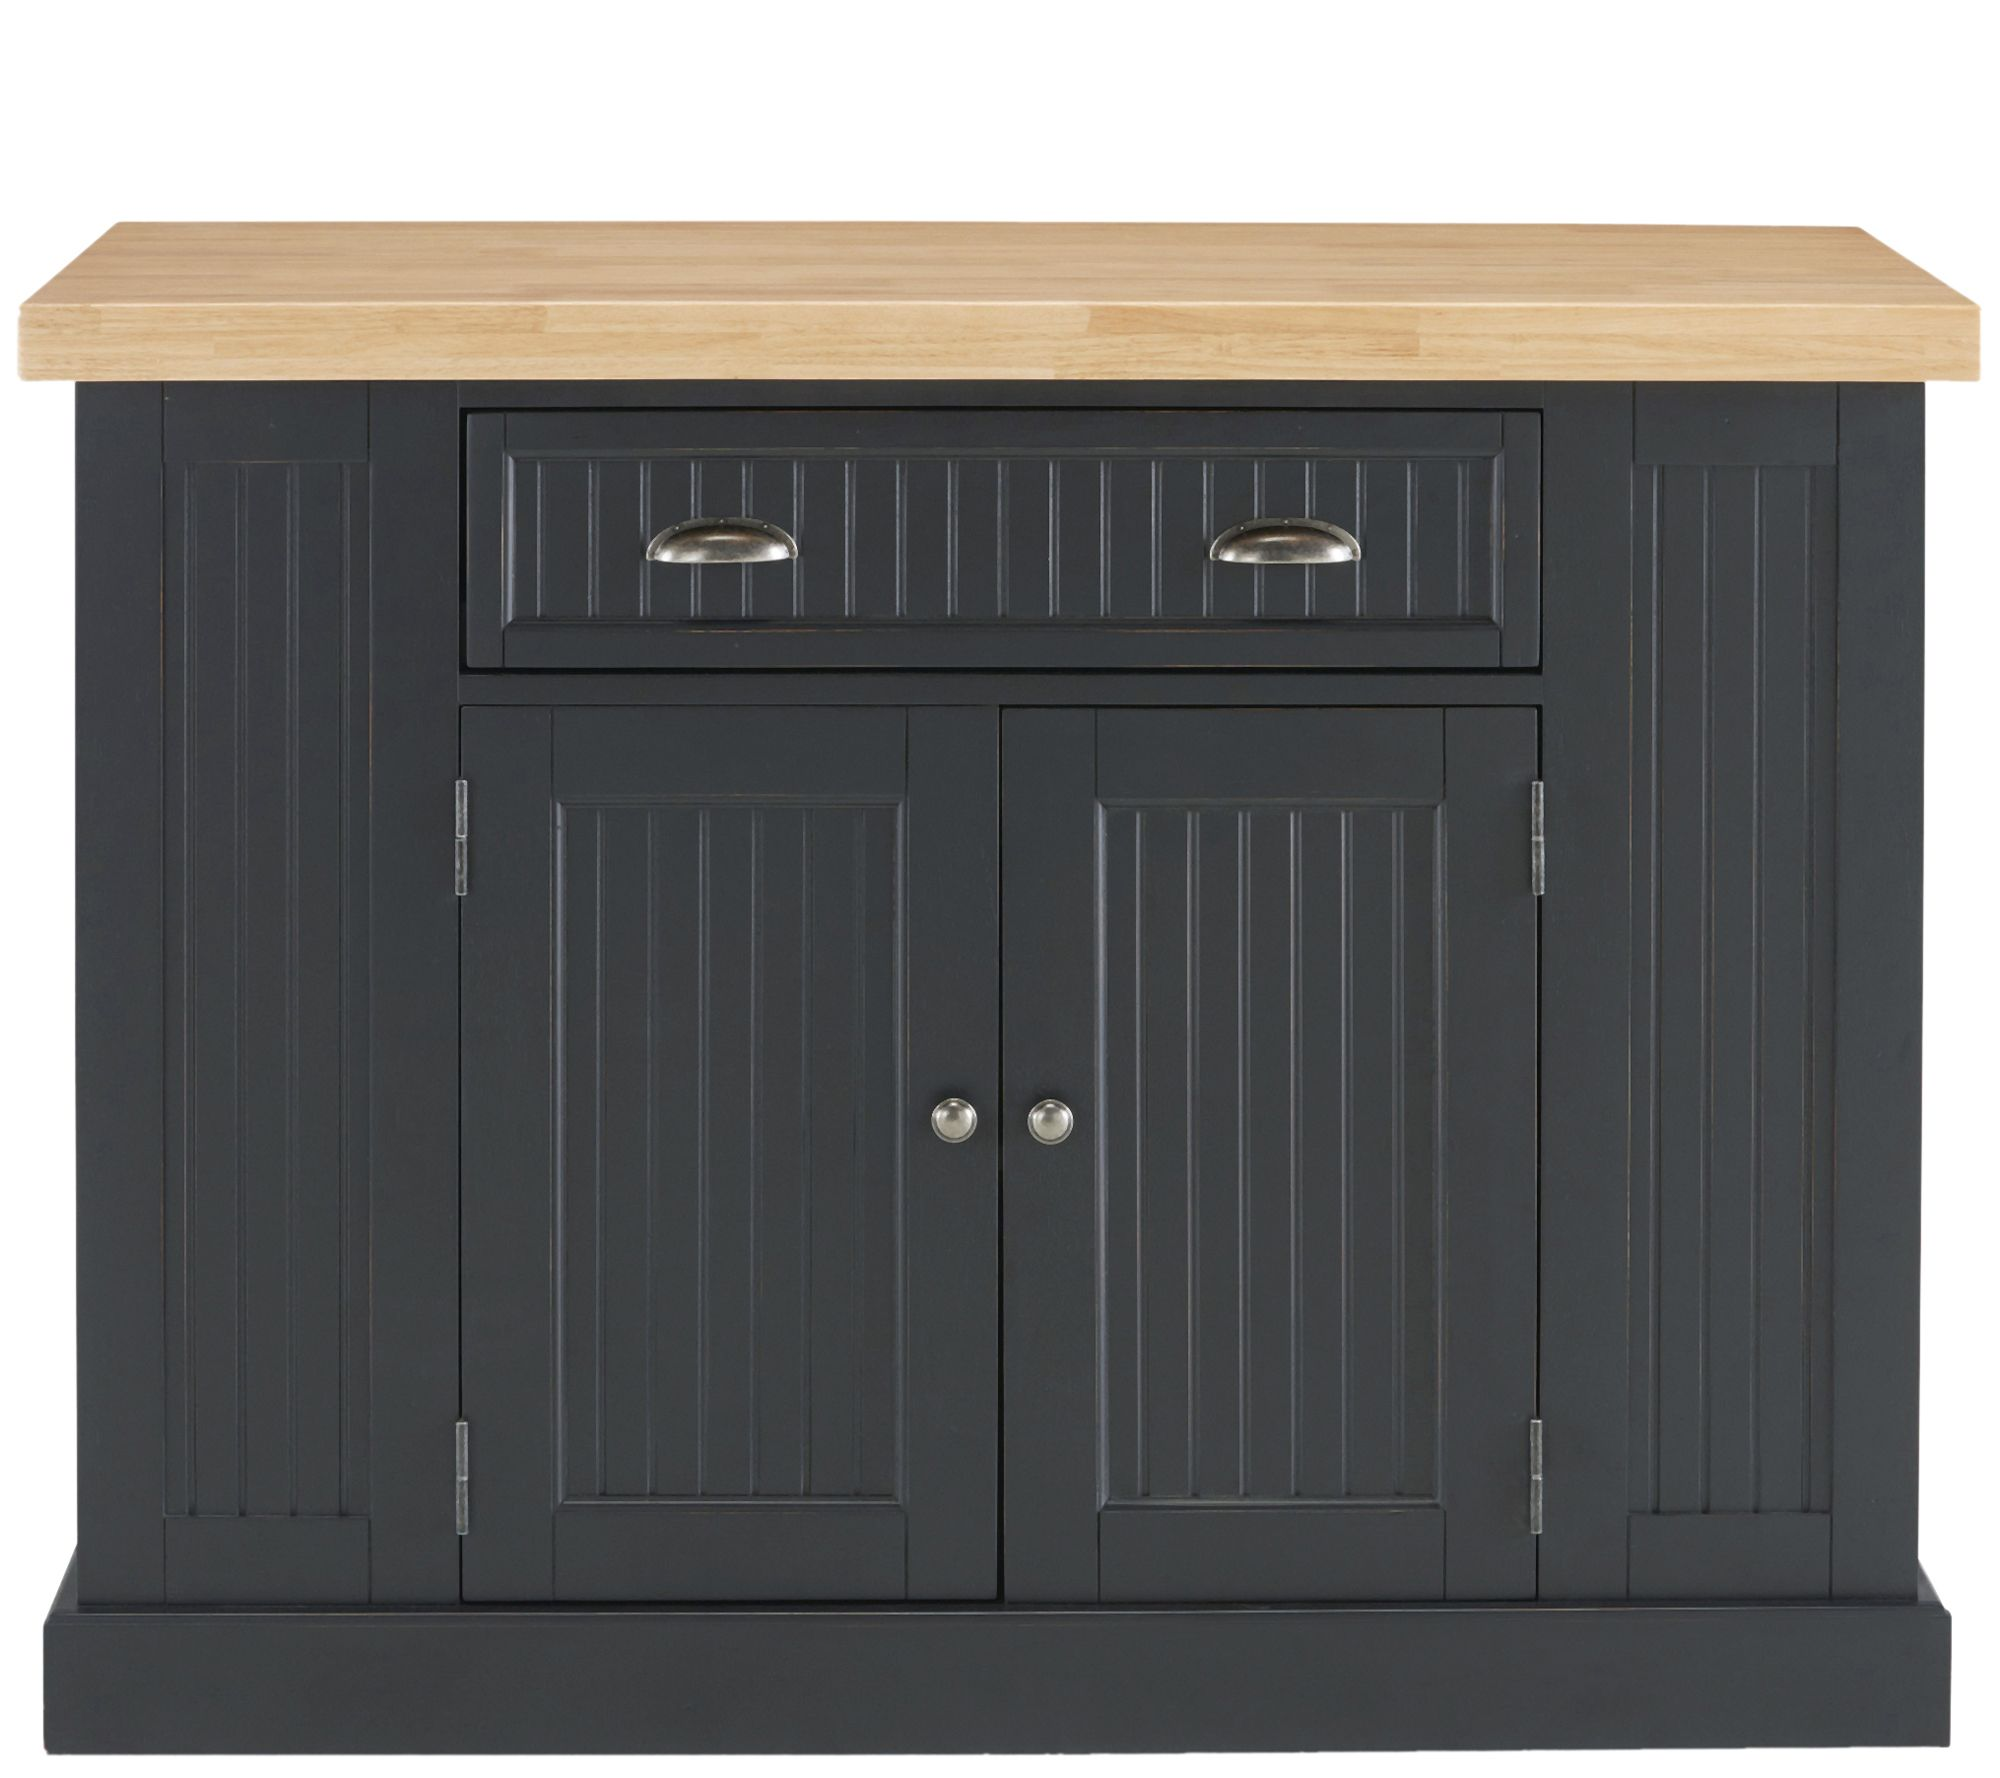 Home Styles Nantucket Solid Wood Top Kitchen Island — QVC.com